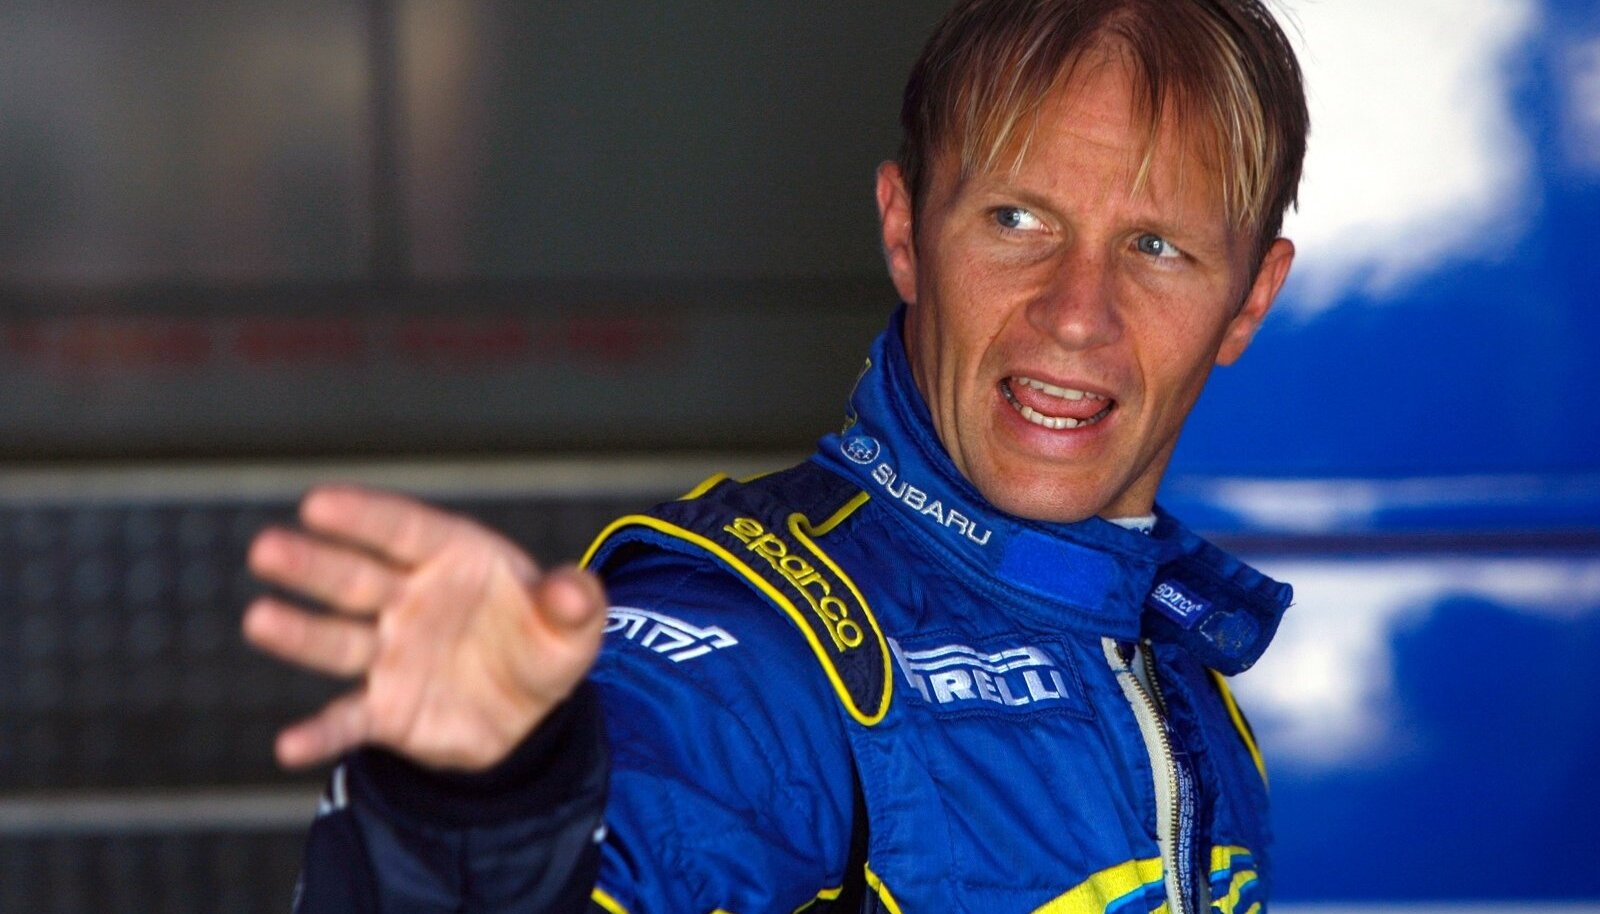 Subaru team driver Solberg of the Netherlands gestures at the end of the Shakedown special stage before the official start of the Rally of Italy in Sardinia